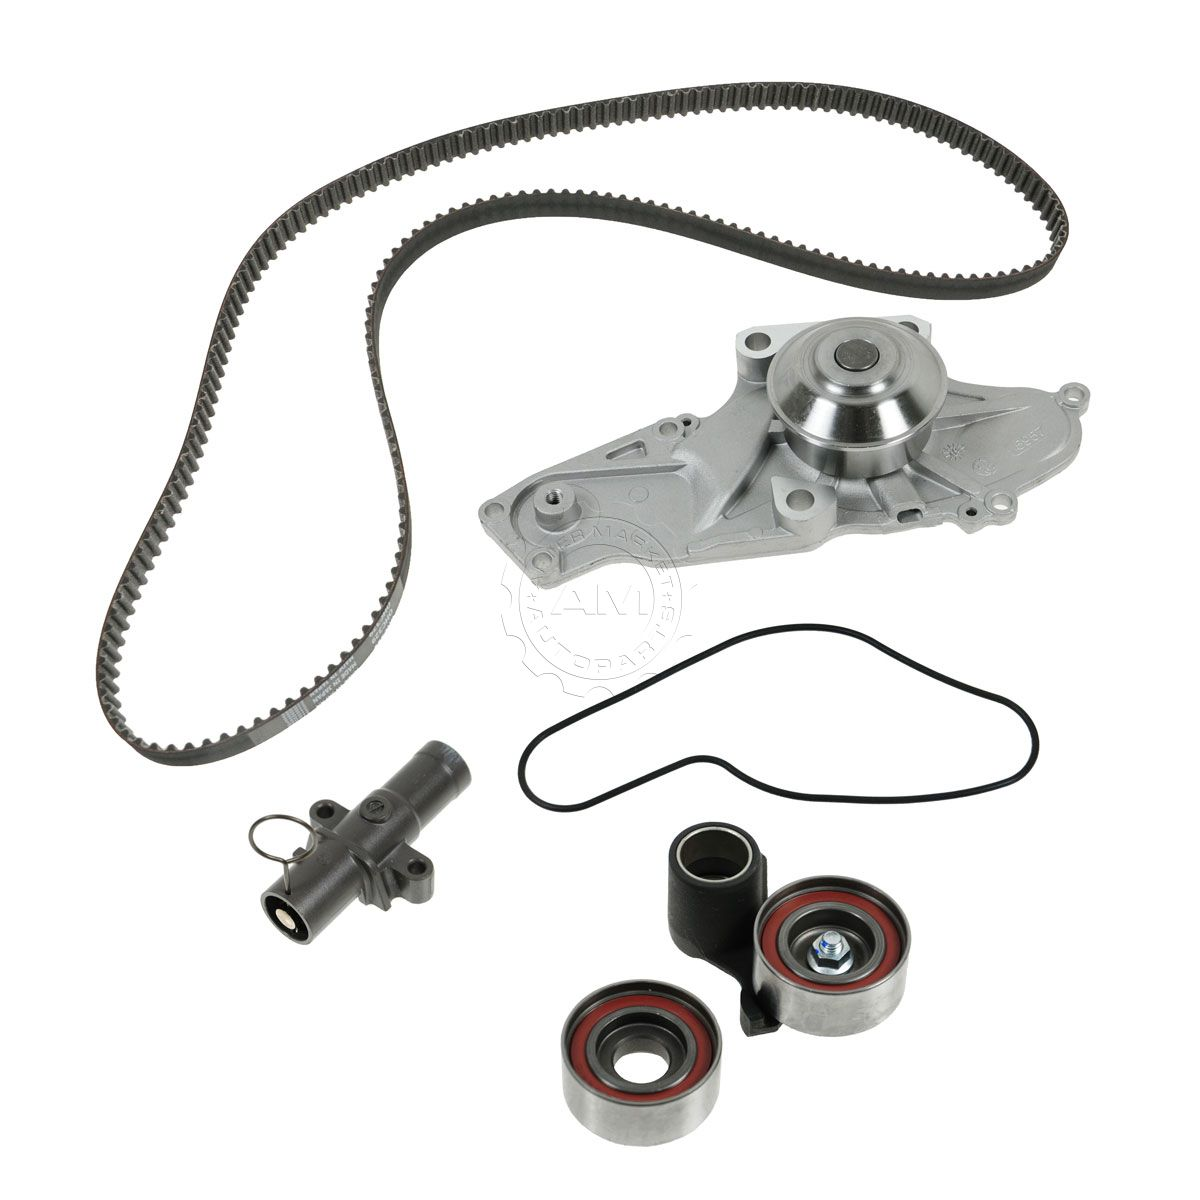 2009 Acura Tl Camshaft: GATES Timing Belt/Water Pump Kit For Accord TL MDX Pickup